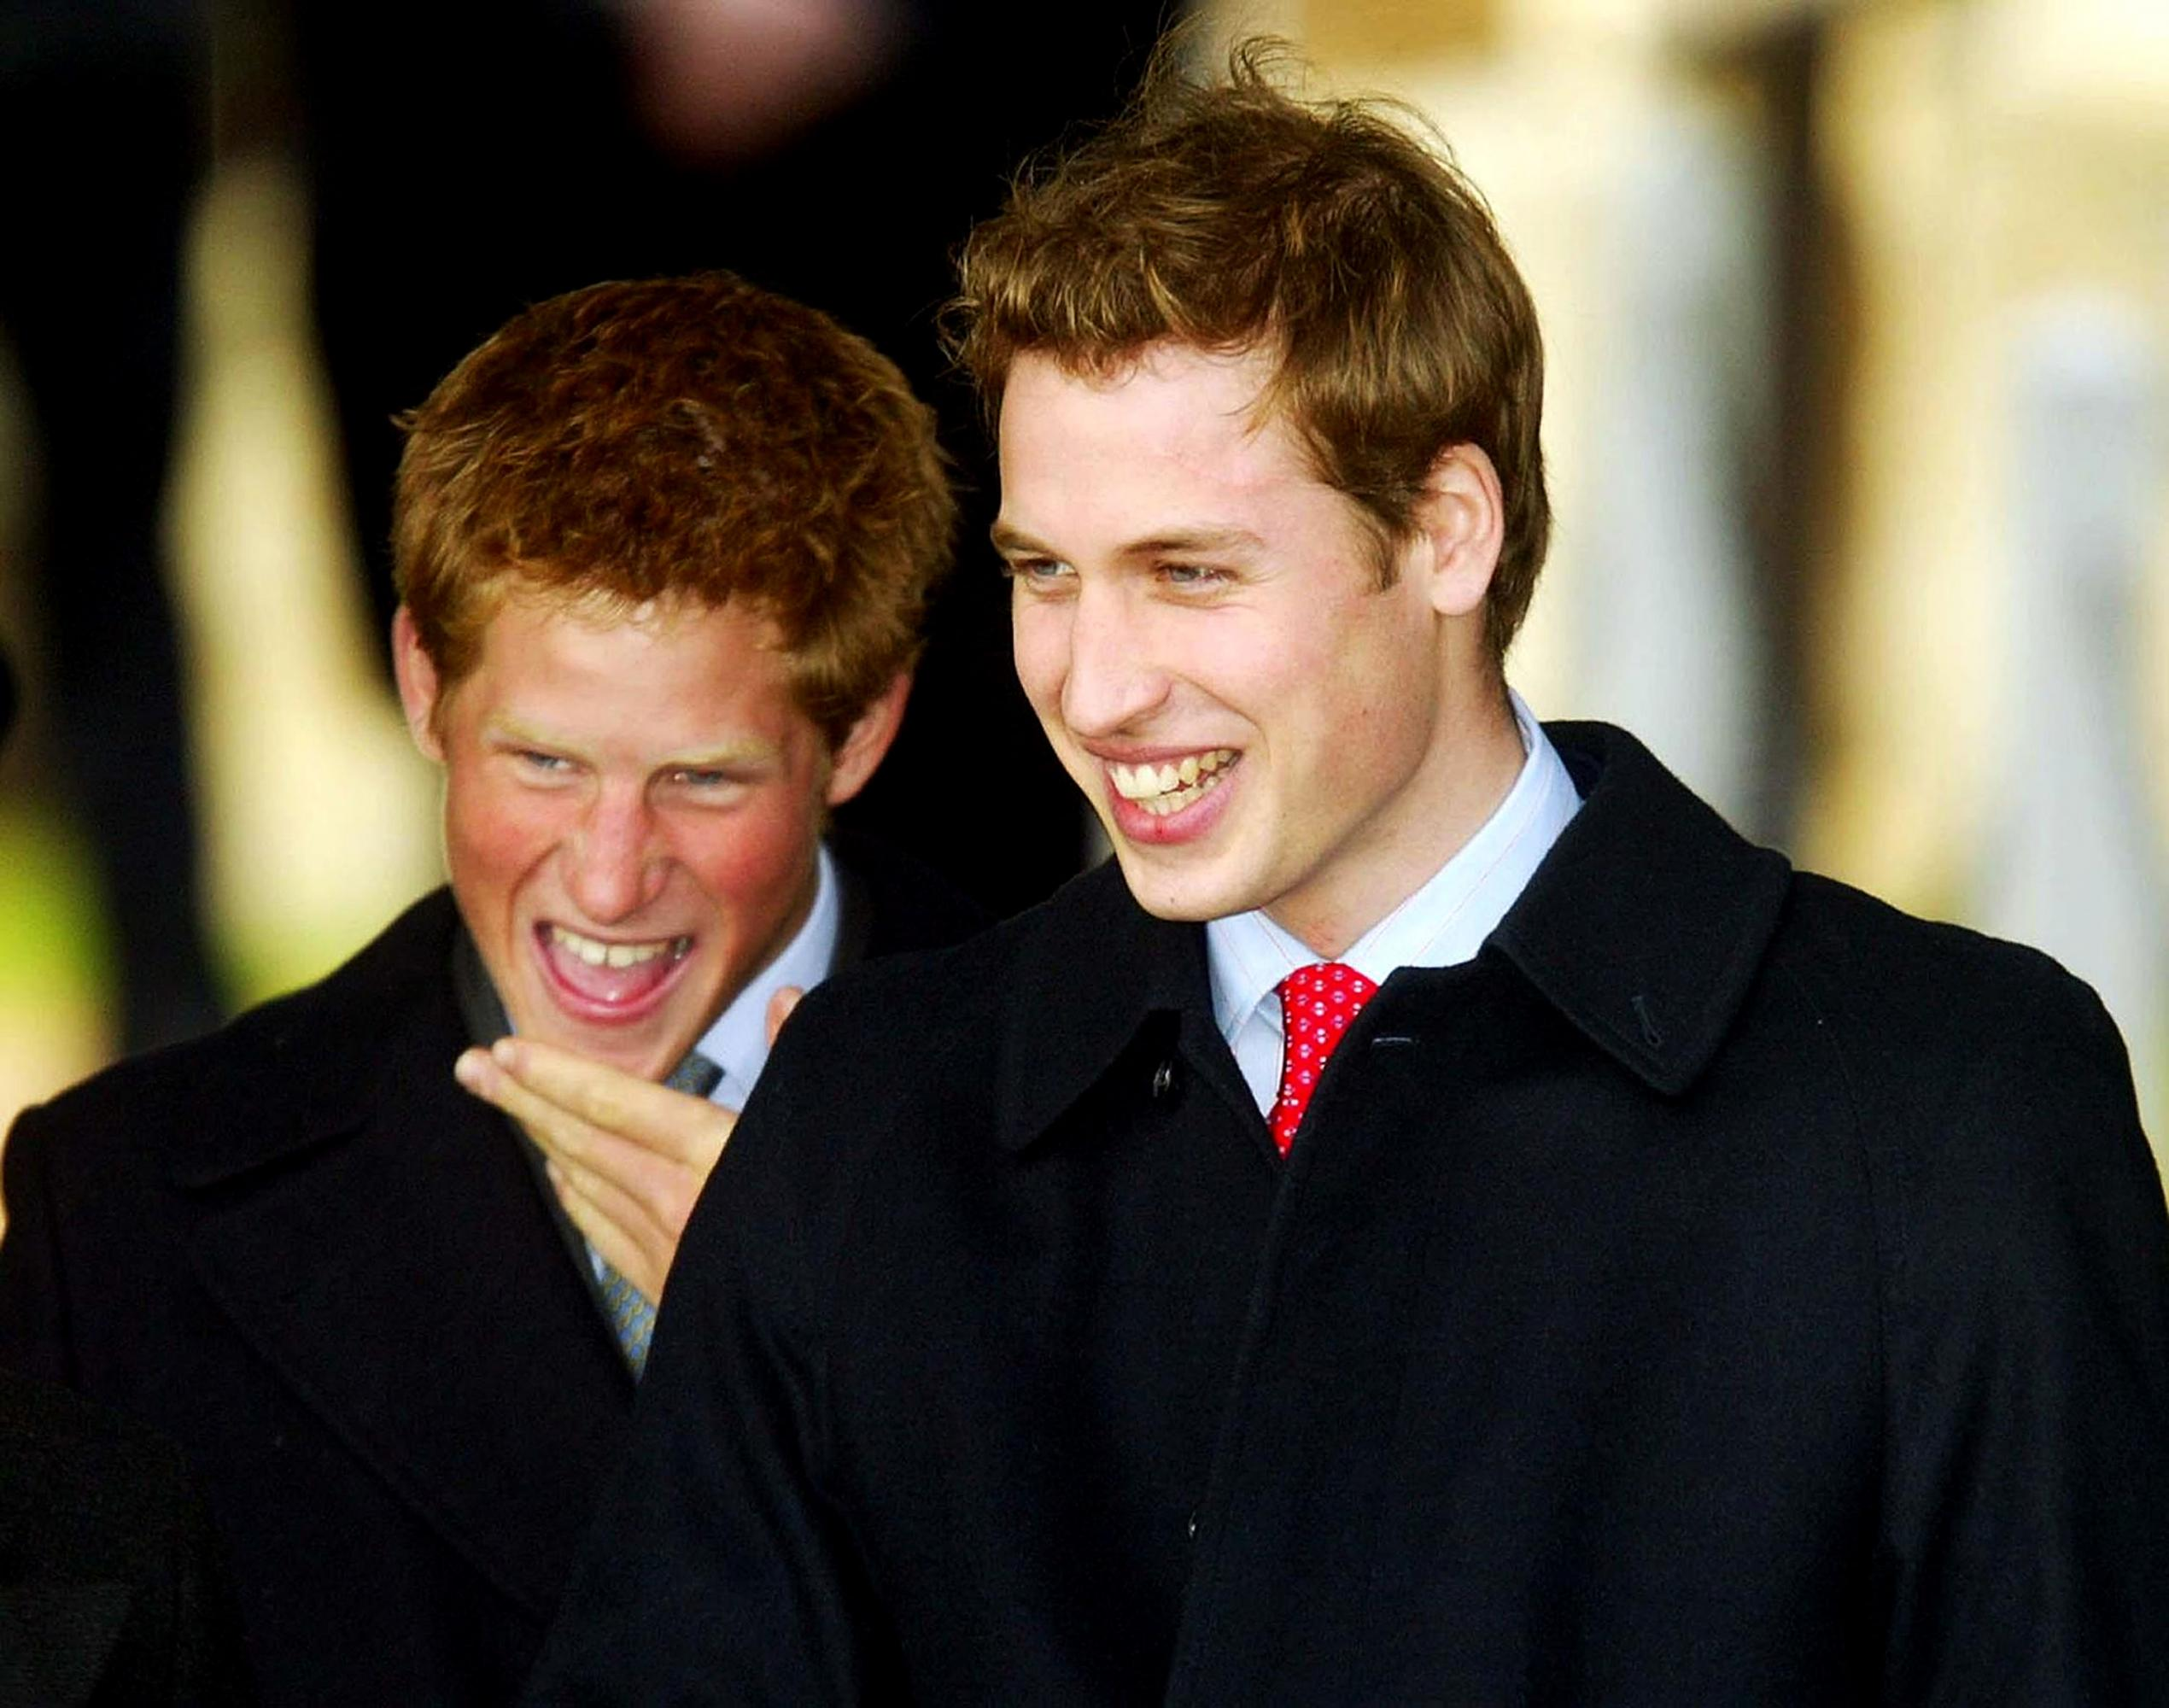 The Reason Behind Prince William and Prince Harry's Feud